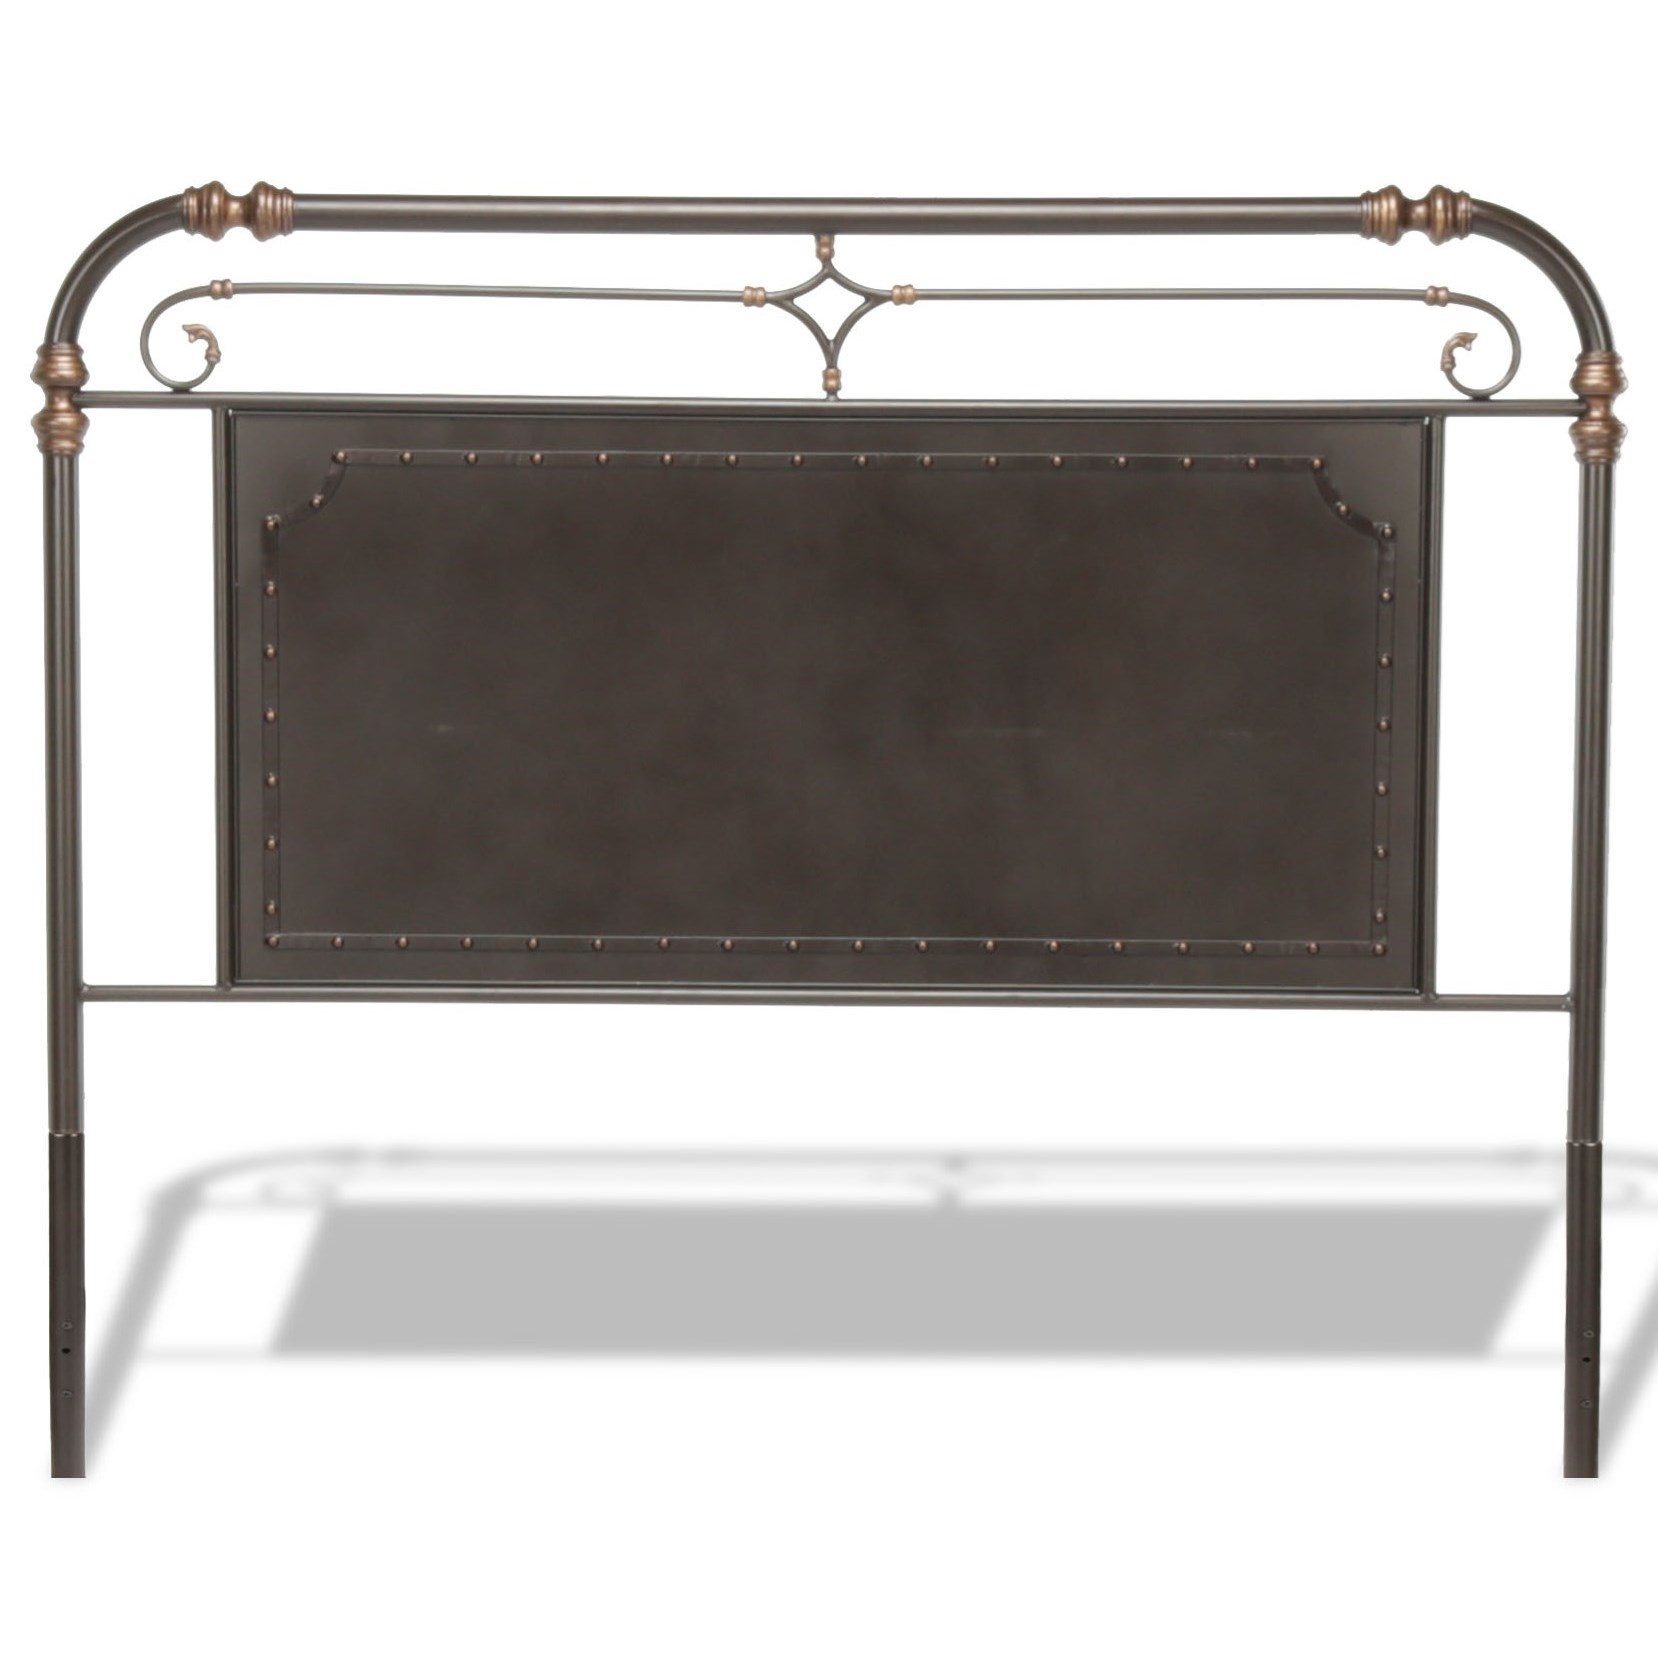 Fashion Bed Group Westchester King Westchester Headboard - Item Number: B12D46